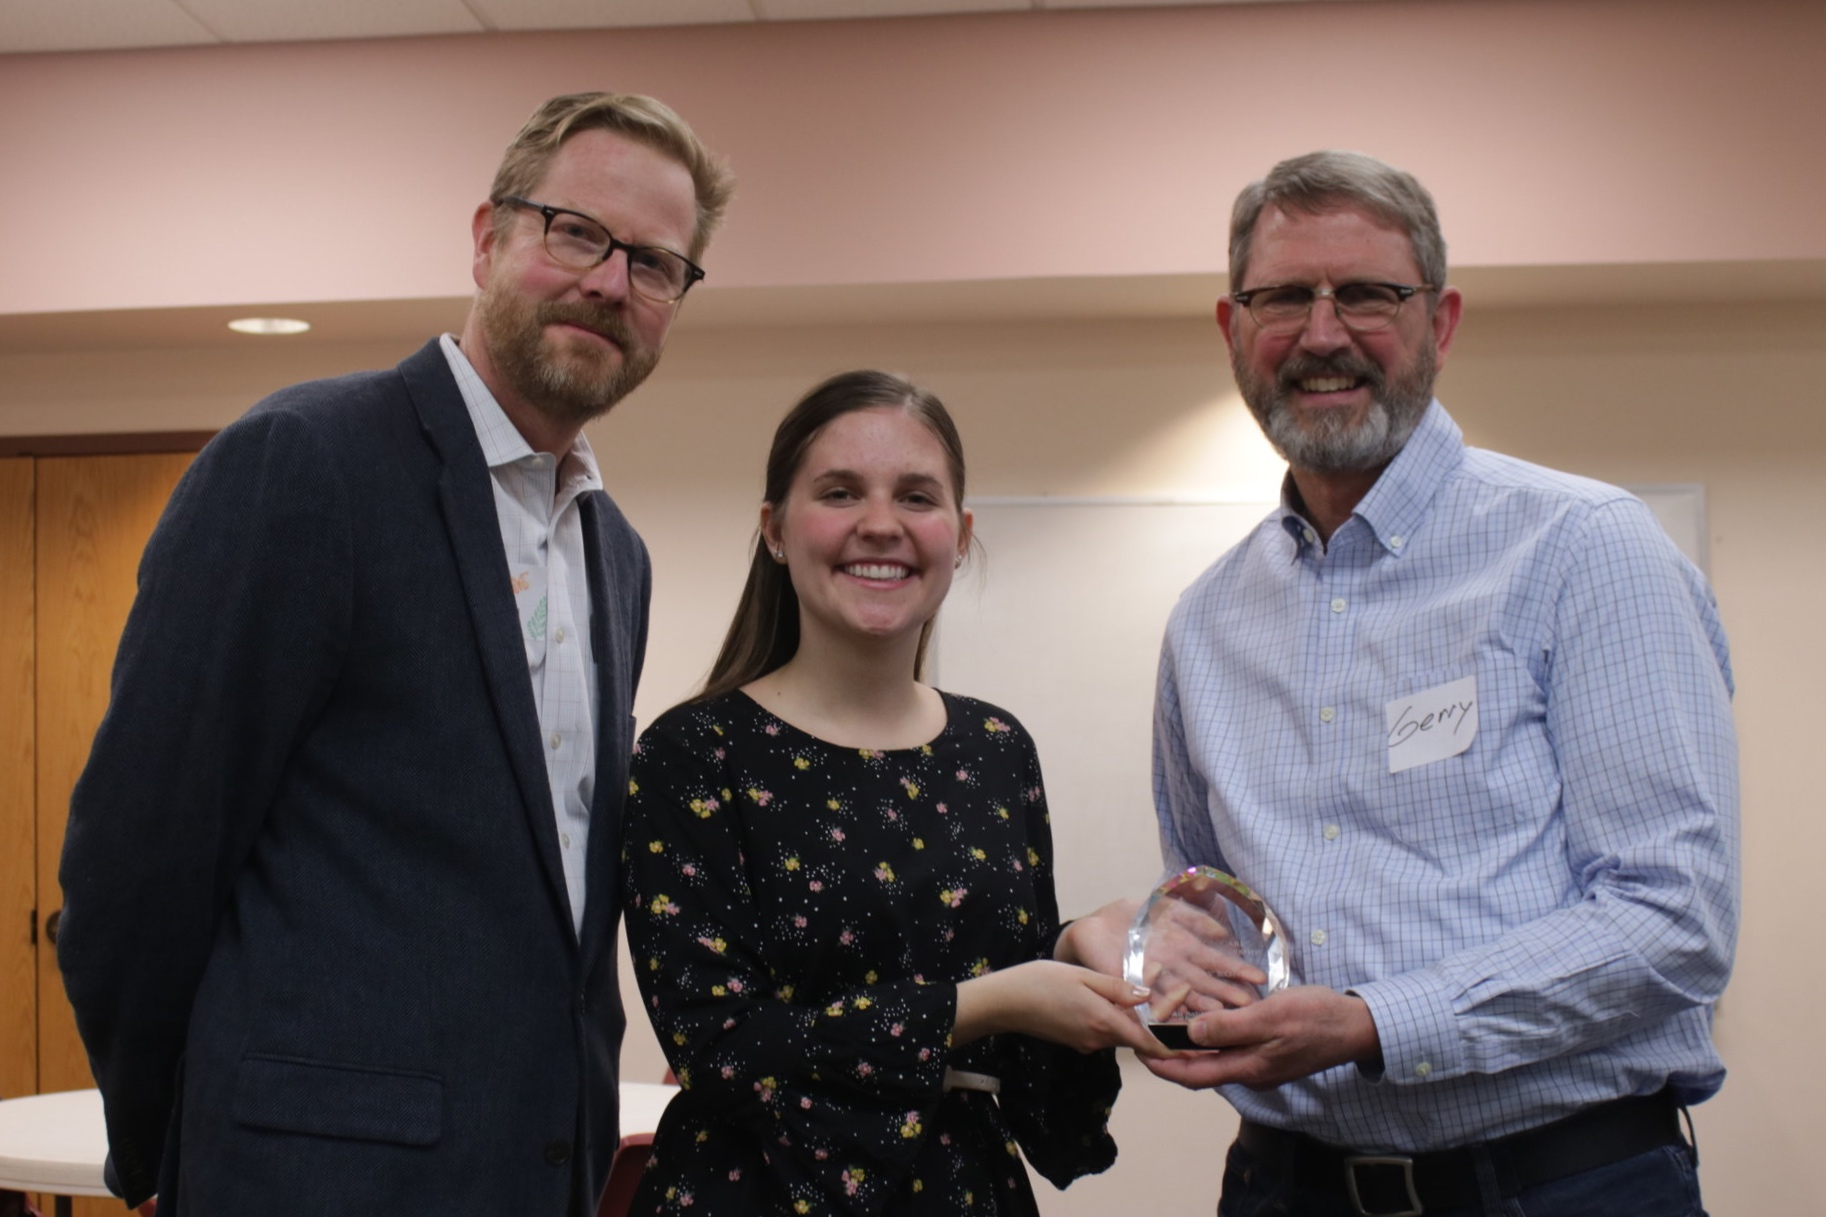 Rev. Koning (right) receives award from Natalie Knapp (center) and Jon Terry (left) of the Au Sable Institute.